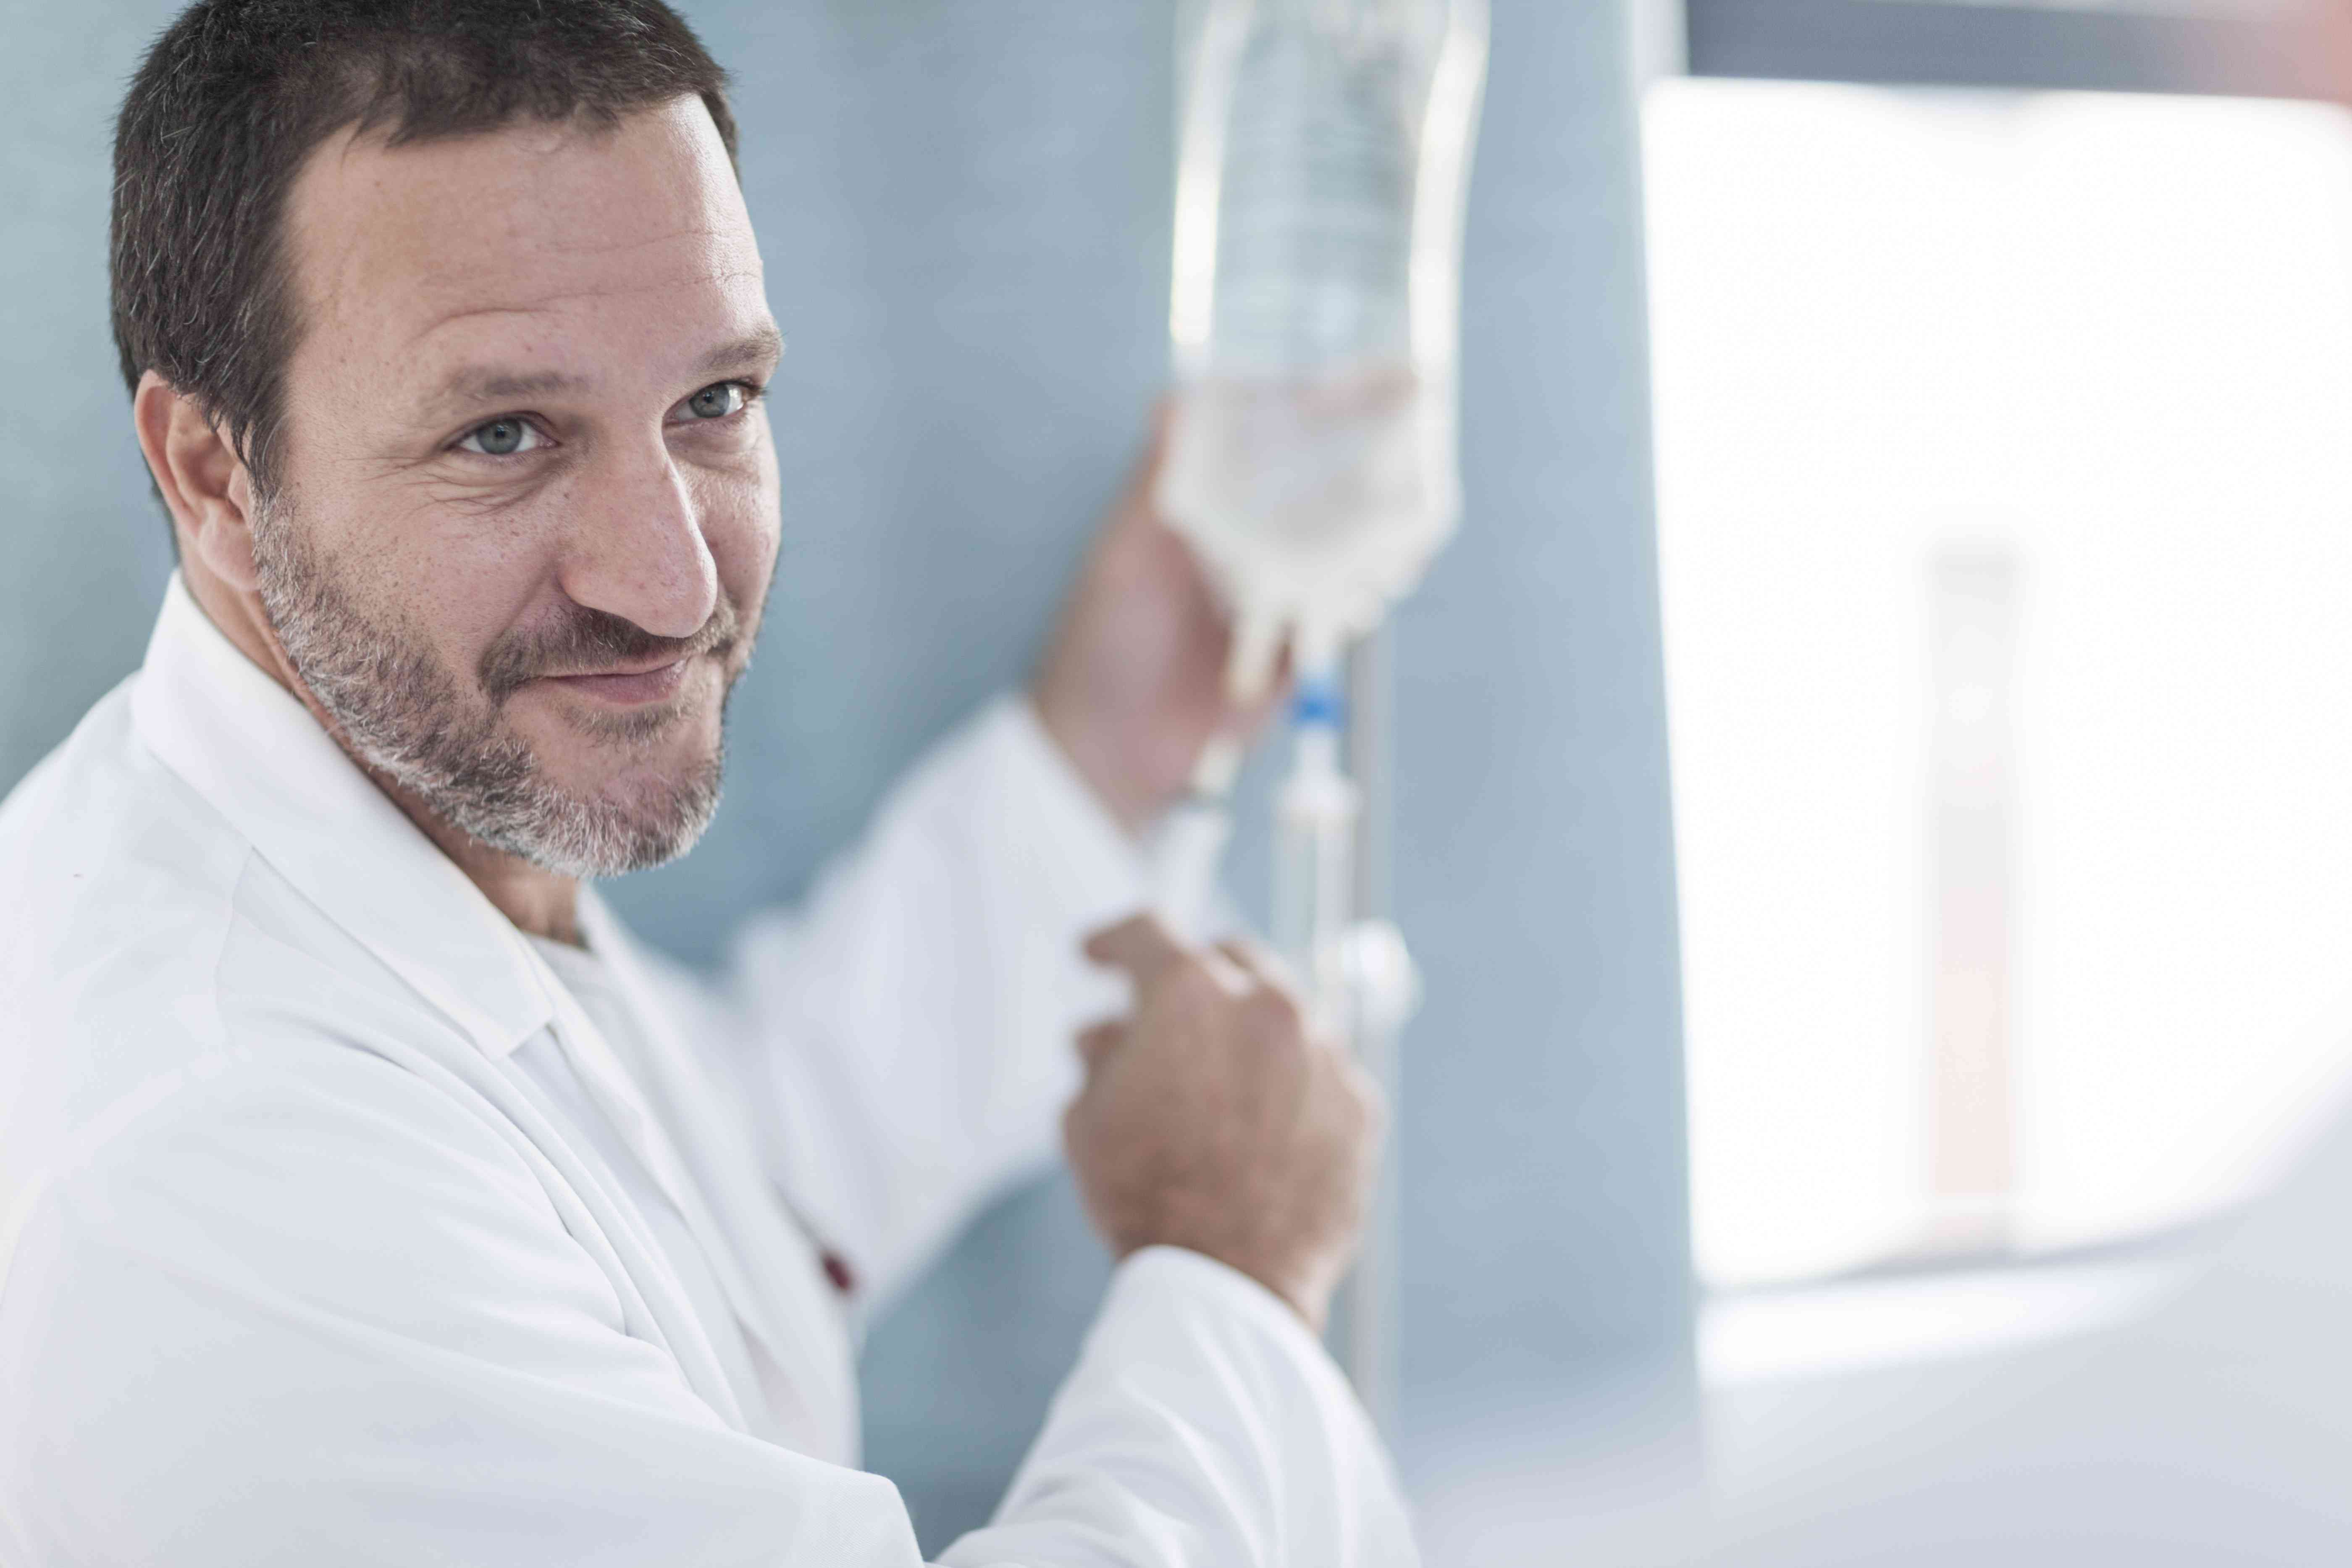 A doctor performing chelation therapy